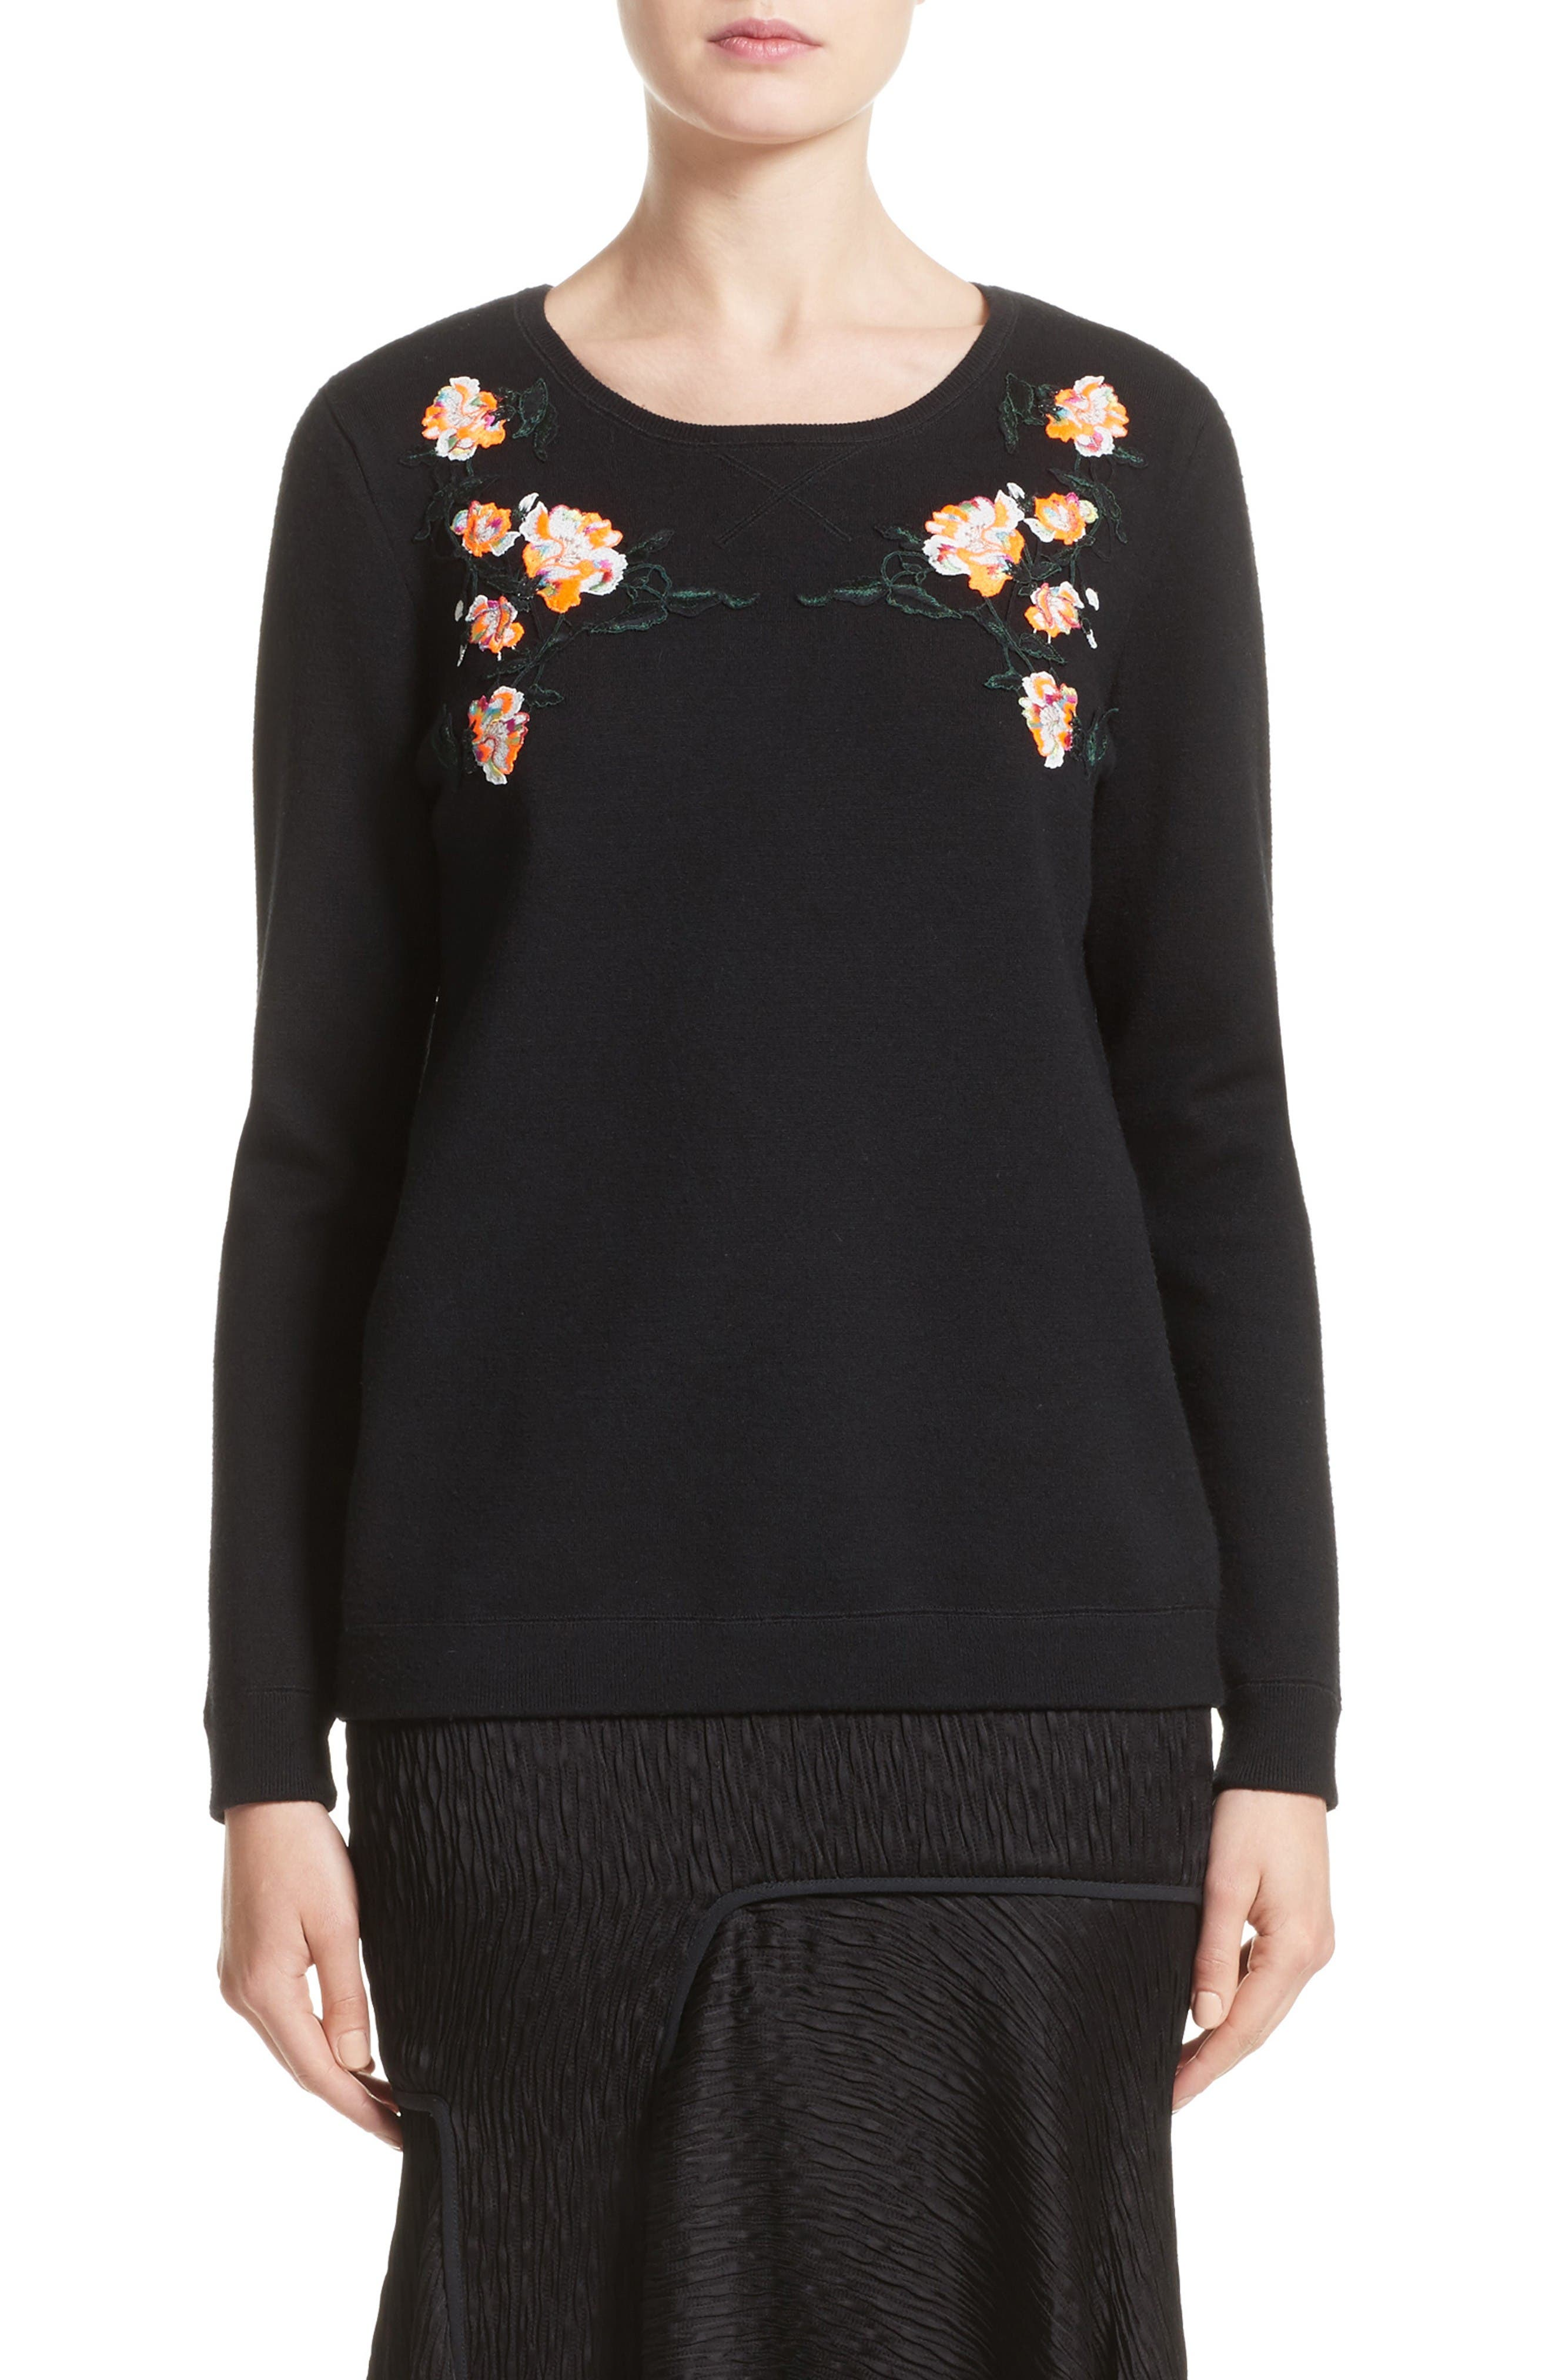 Main Image - Jason Wu Floral Embroidered Merino Wool Blend Sweater